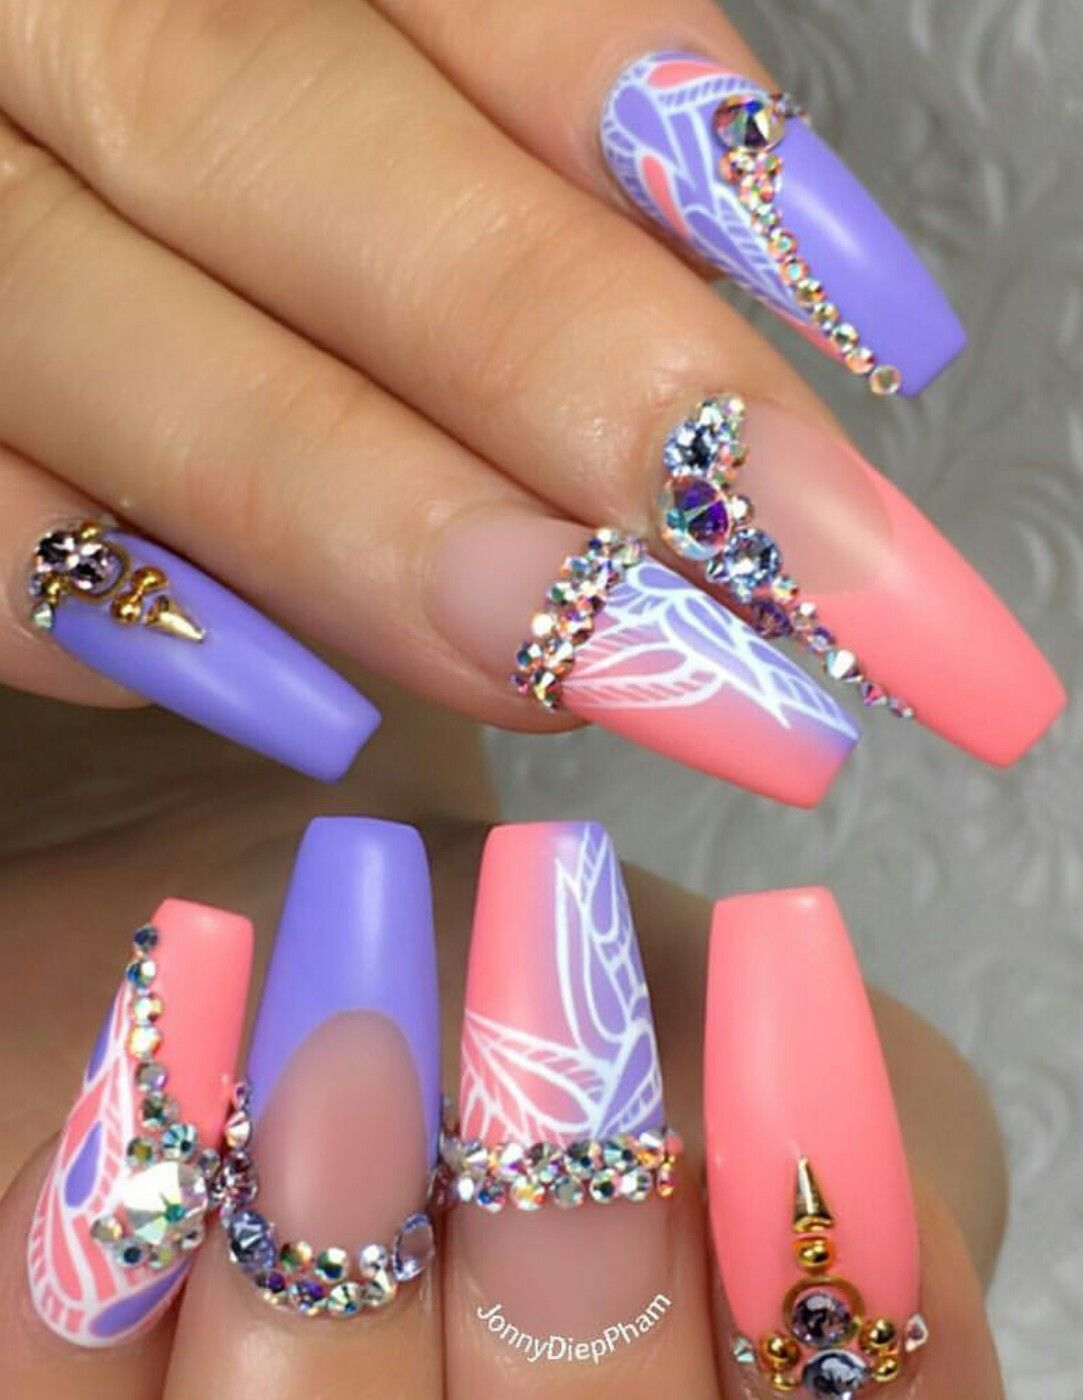 Purple Pink Rhinestone Nails Design Nailart Jonnydieppham